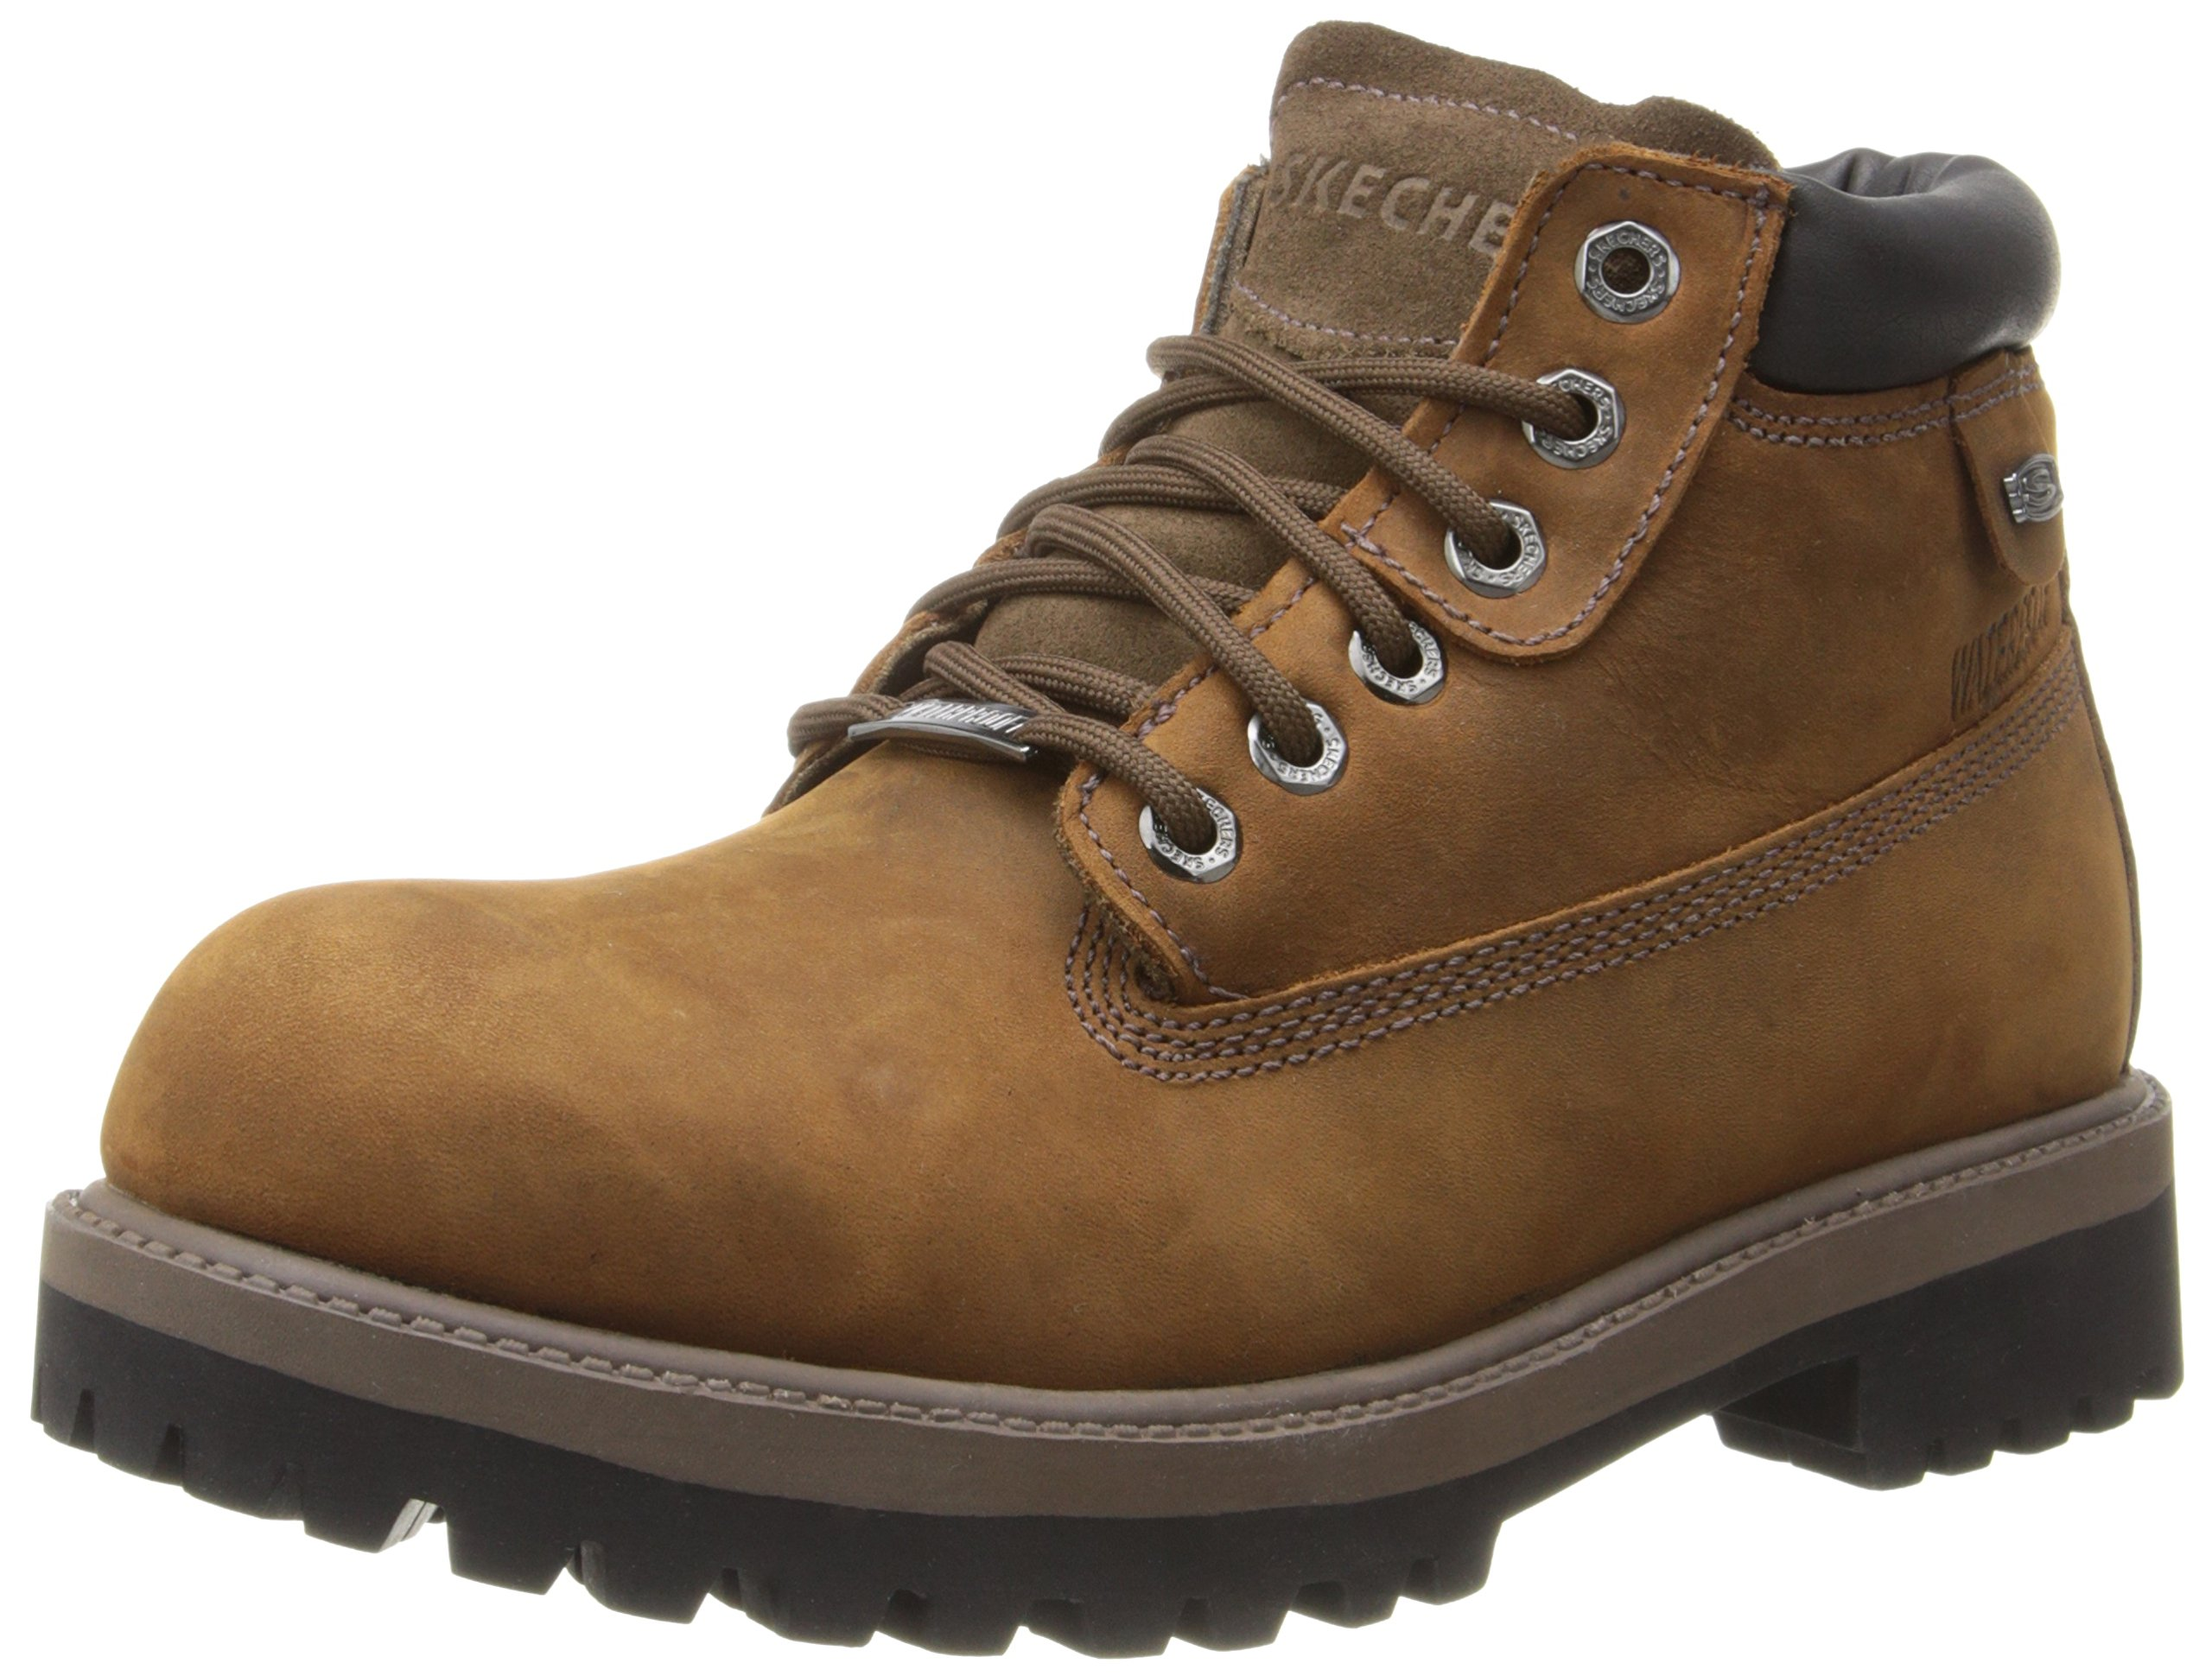 Skechers Men's Verdict Men's Boot,Dark Brown,11 EW US